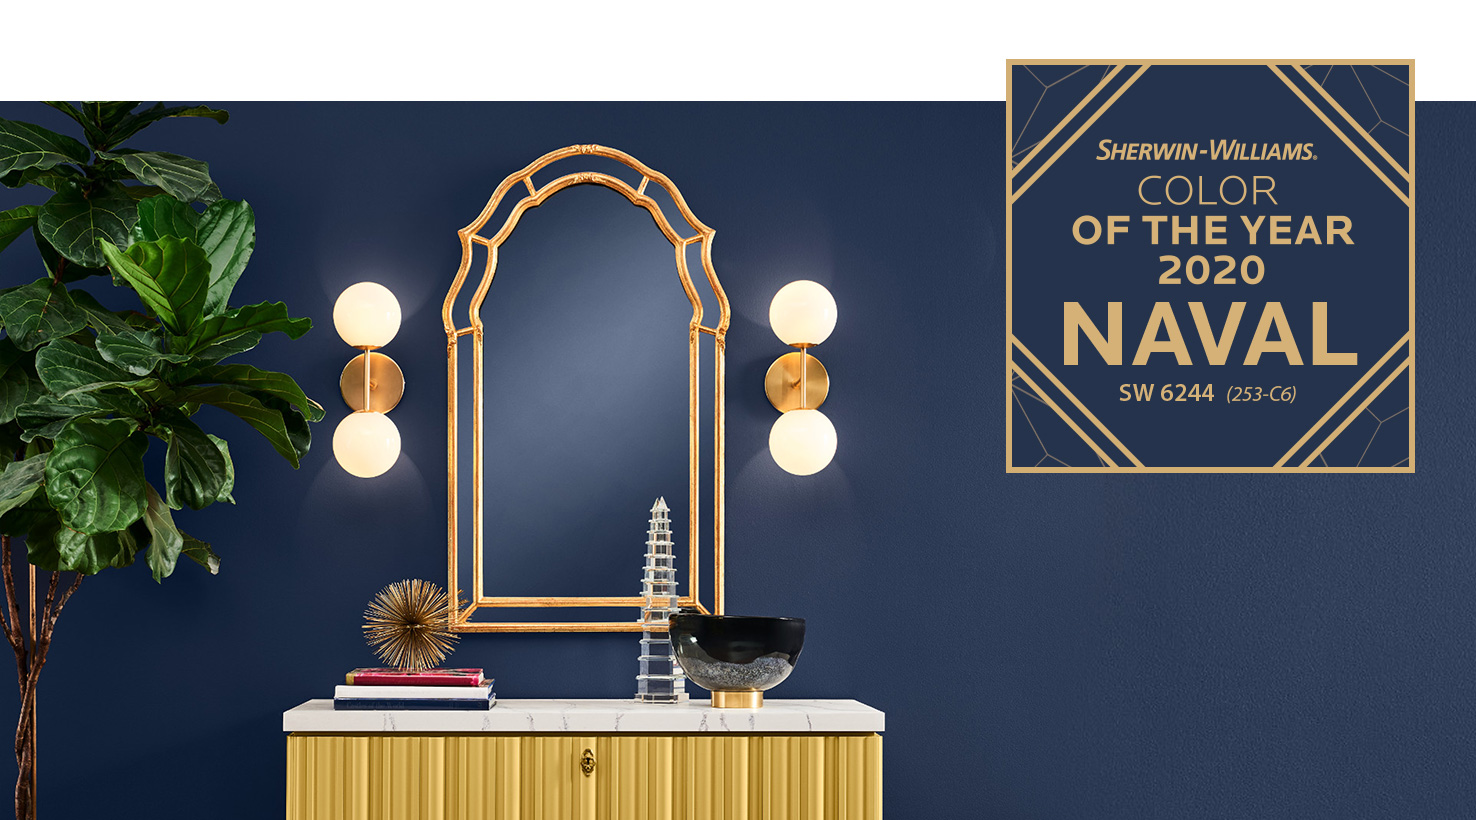 Sherwin-Williams Color of the Year 2020 - Naval SW 6244